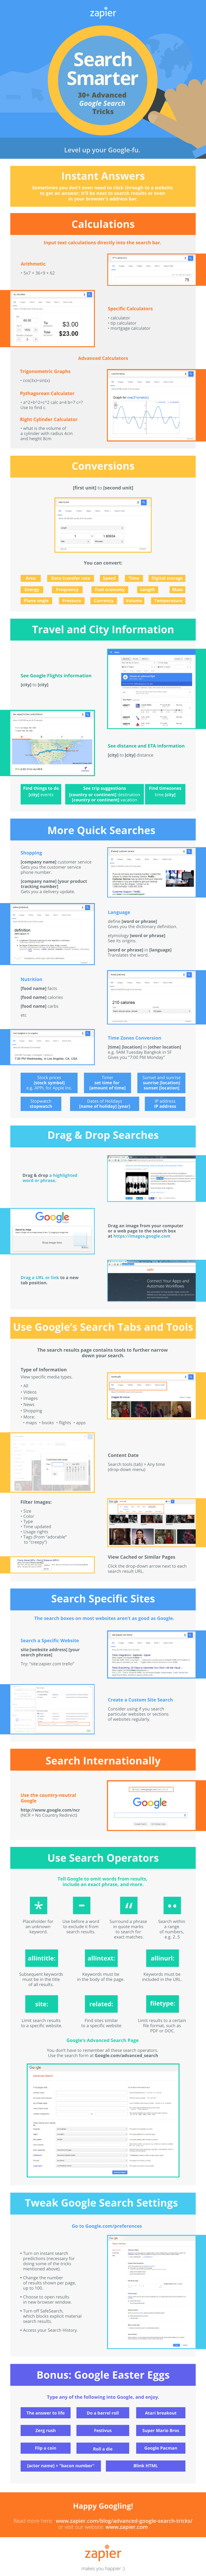 This Infographic Crams In Over 30 Essential Google Search Tips